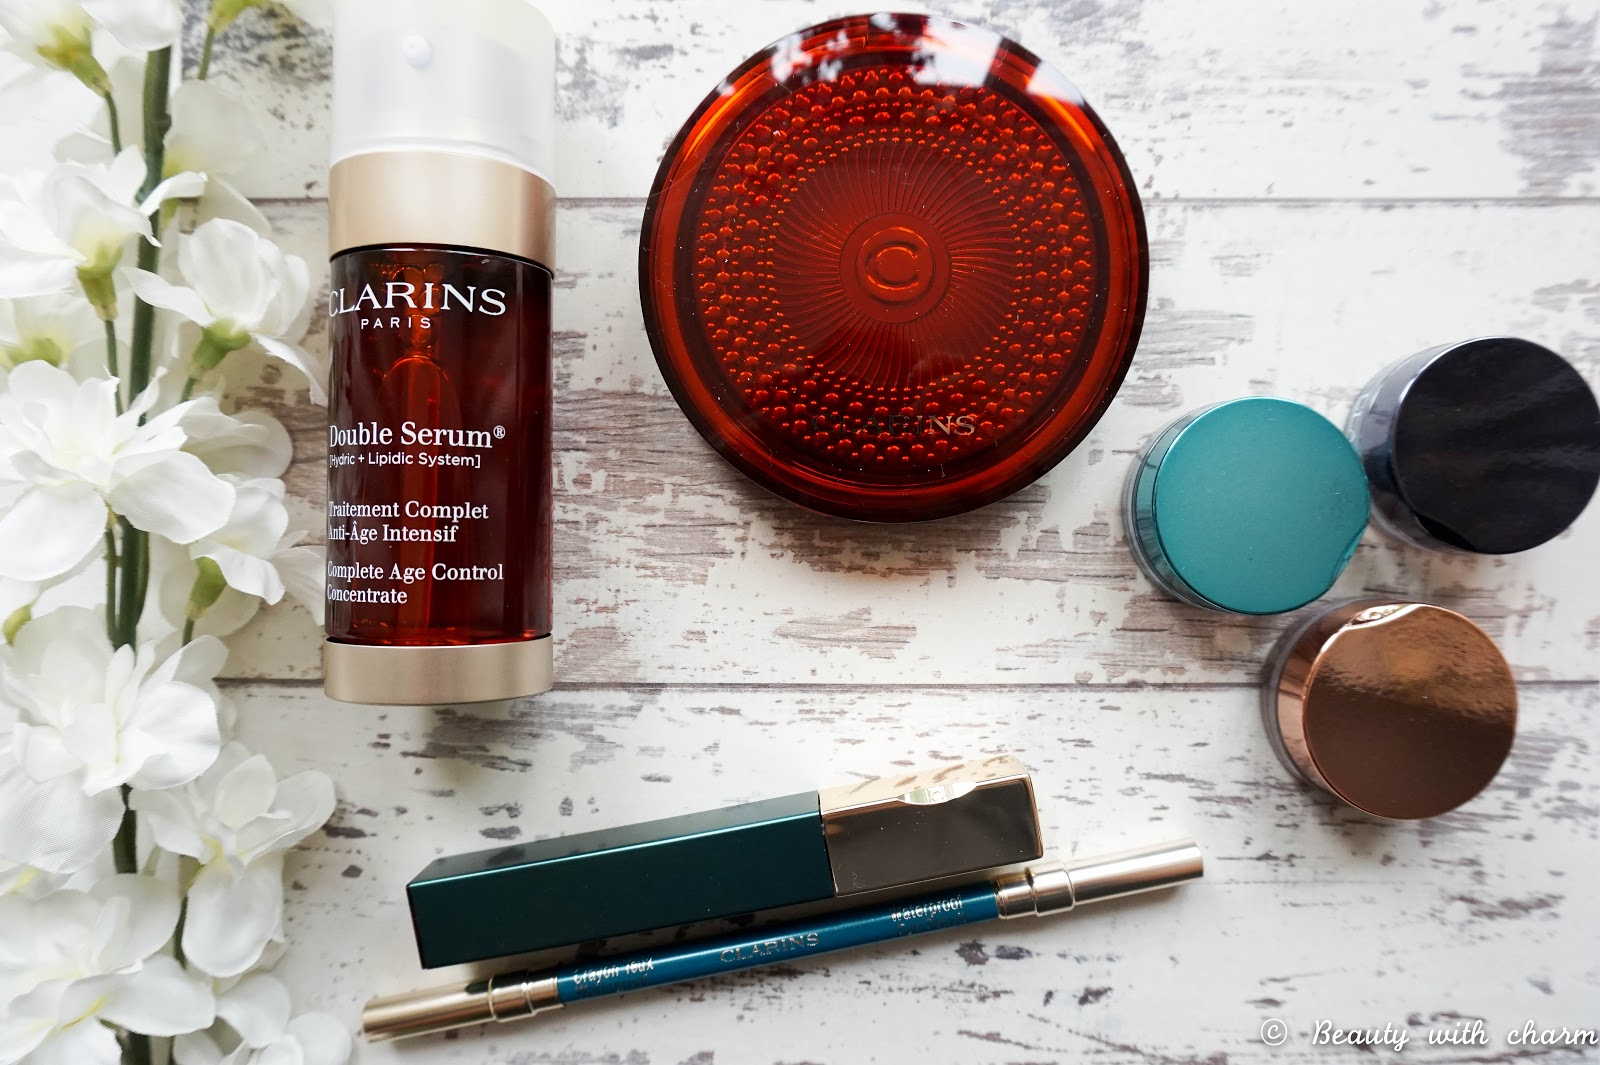 Clarins Aquatic Treasures Summer Collection